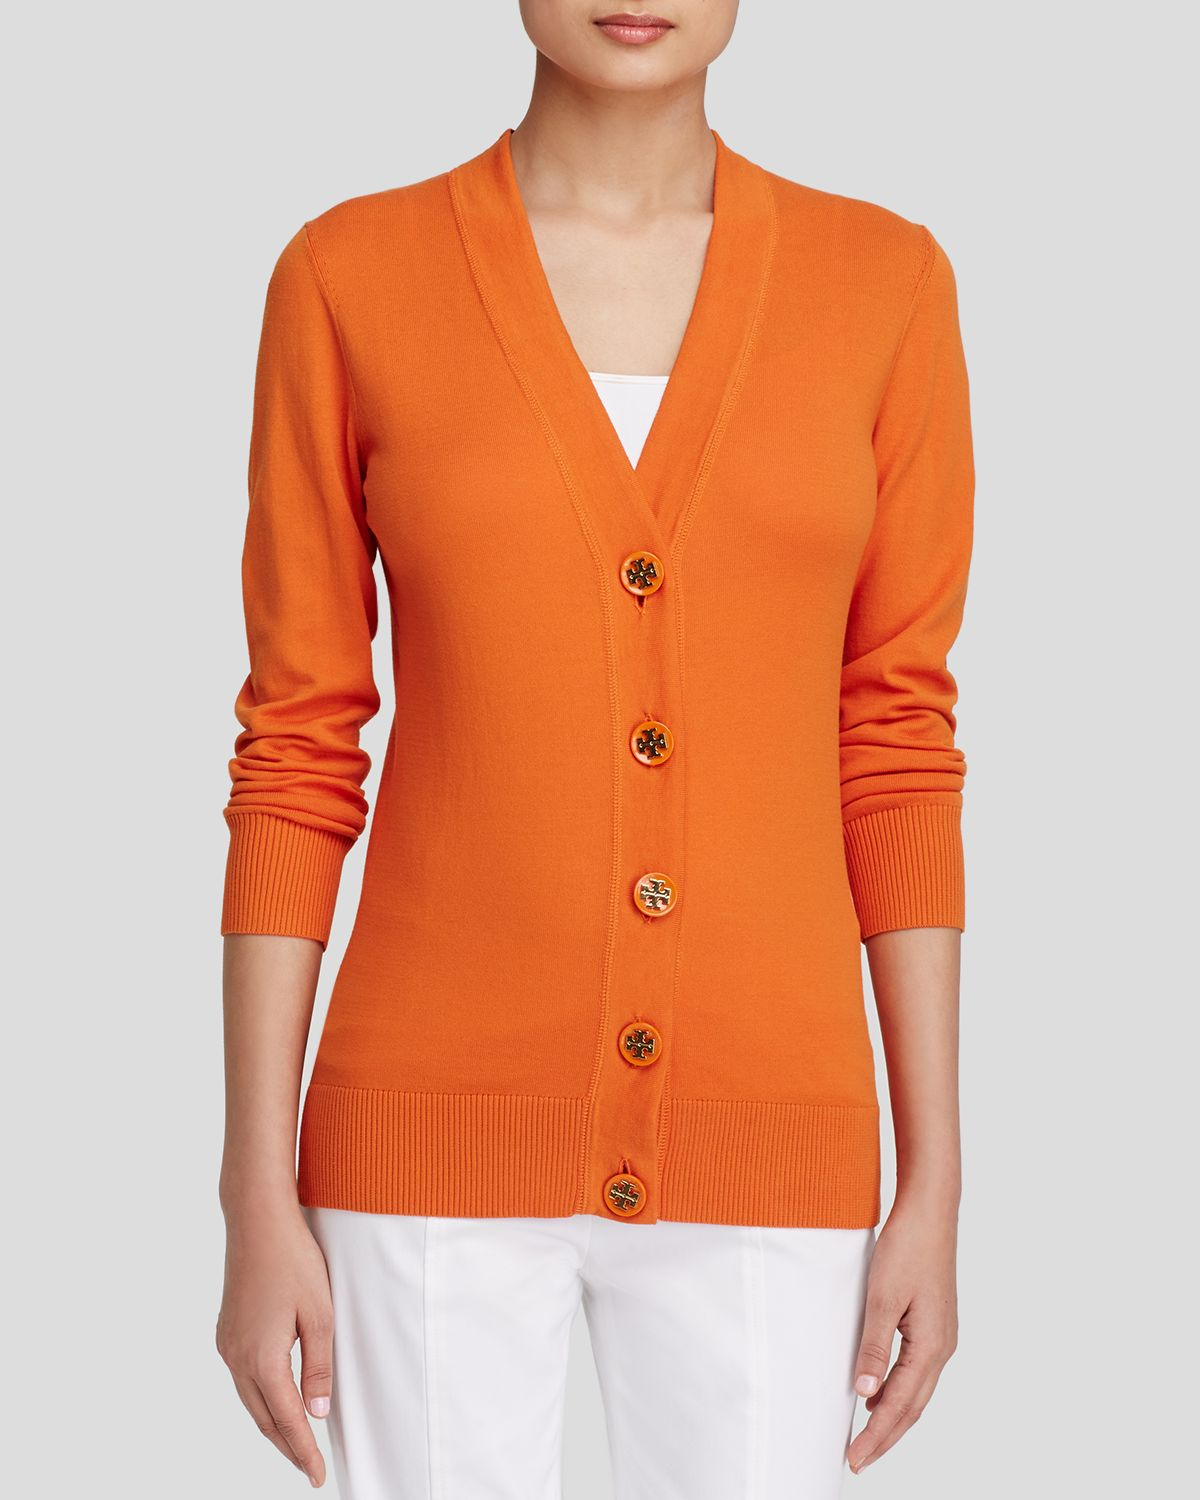 Tory burch Cardigan - Simone in Orange | Lyst